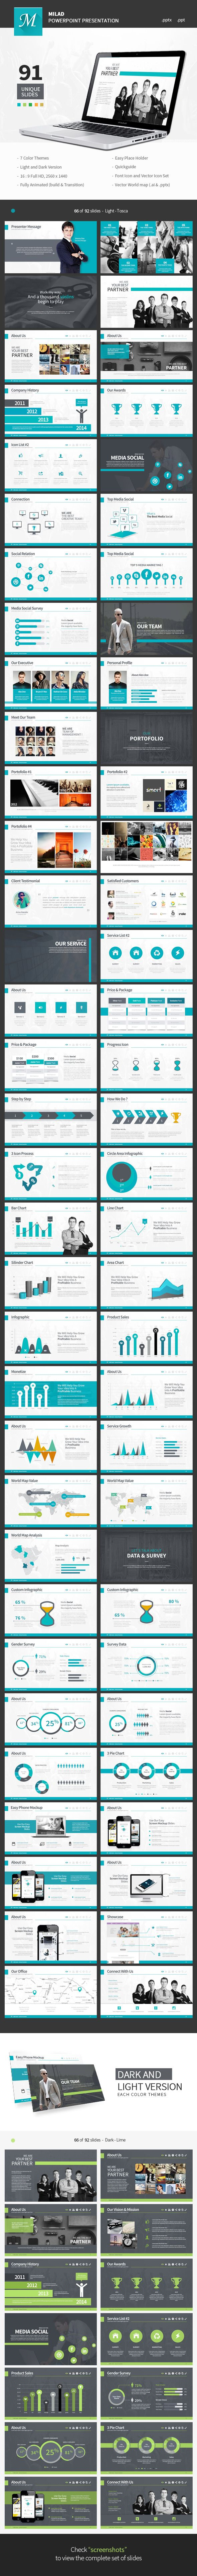 Milad – Powerpoint Presentation (PowerPoint Templates)